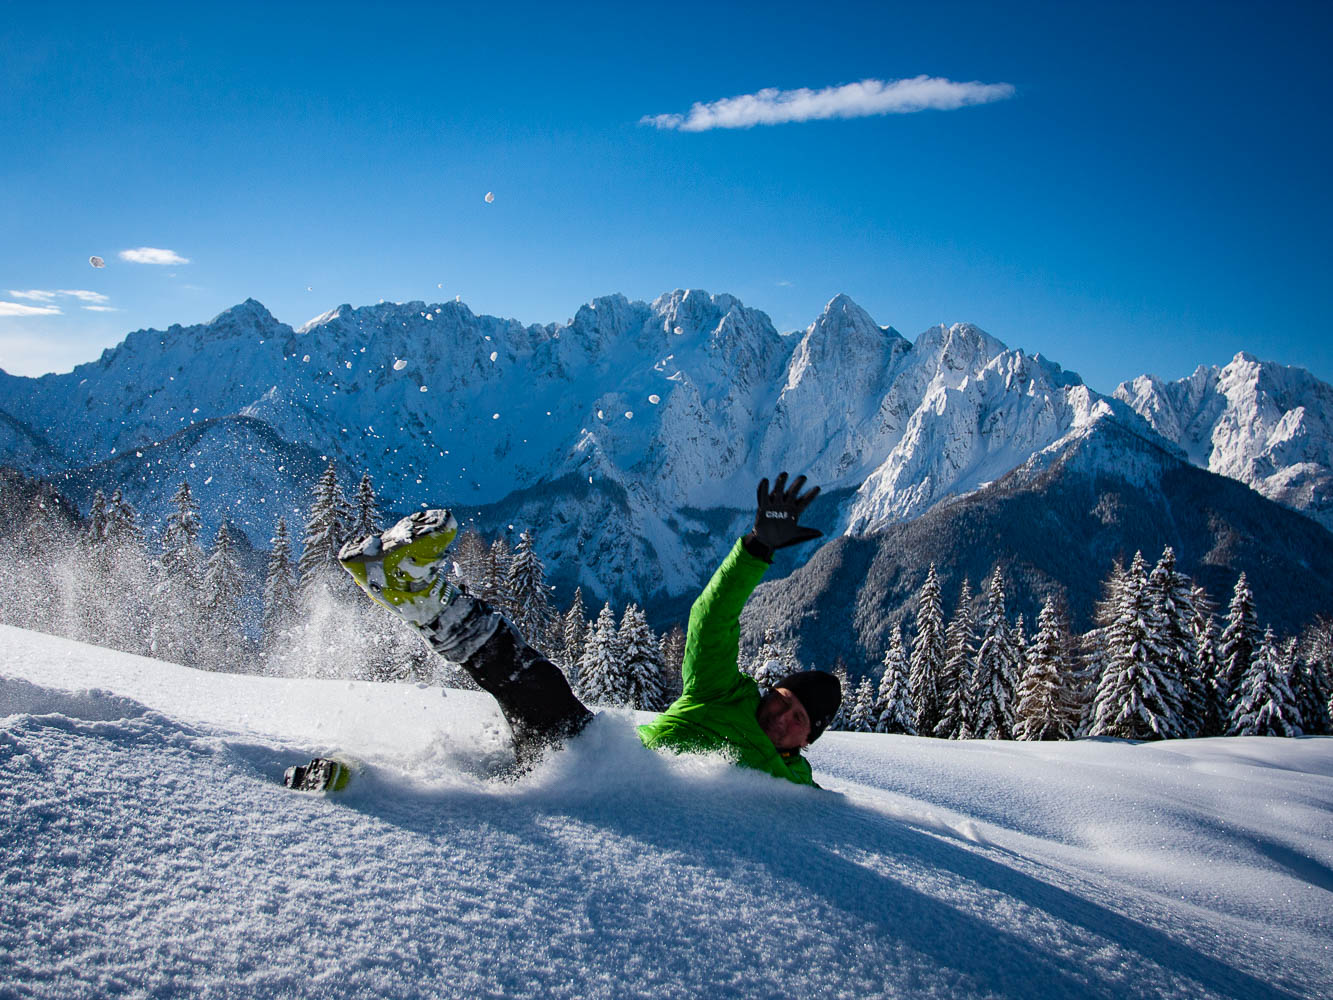 Back country skier joyfully throws himself in deep powder snow backed with a beautiful snow covered mountain panorama of Julian Alps.